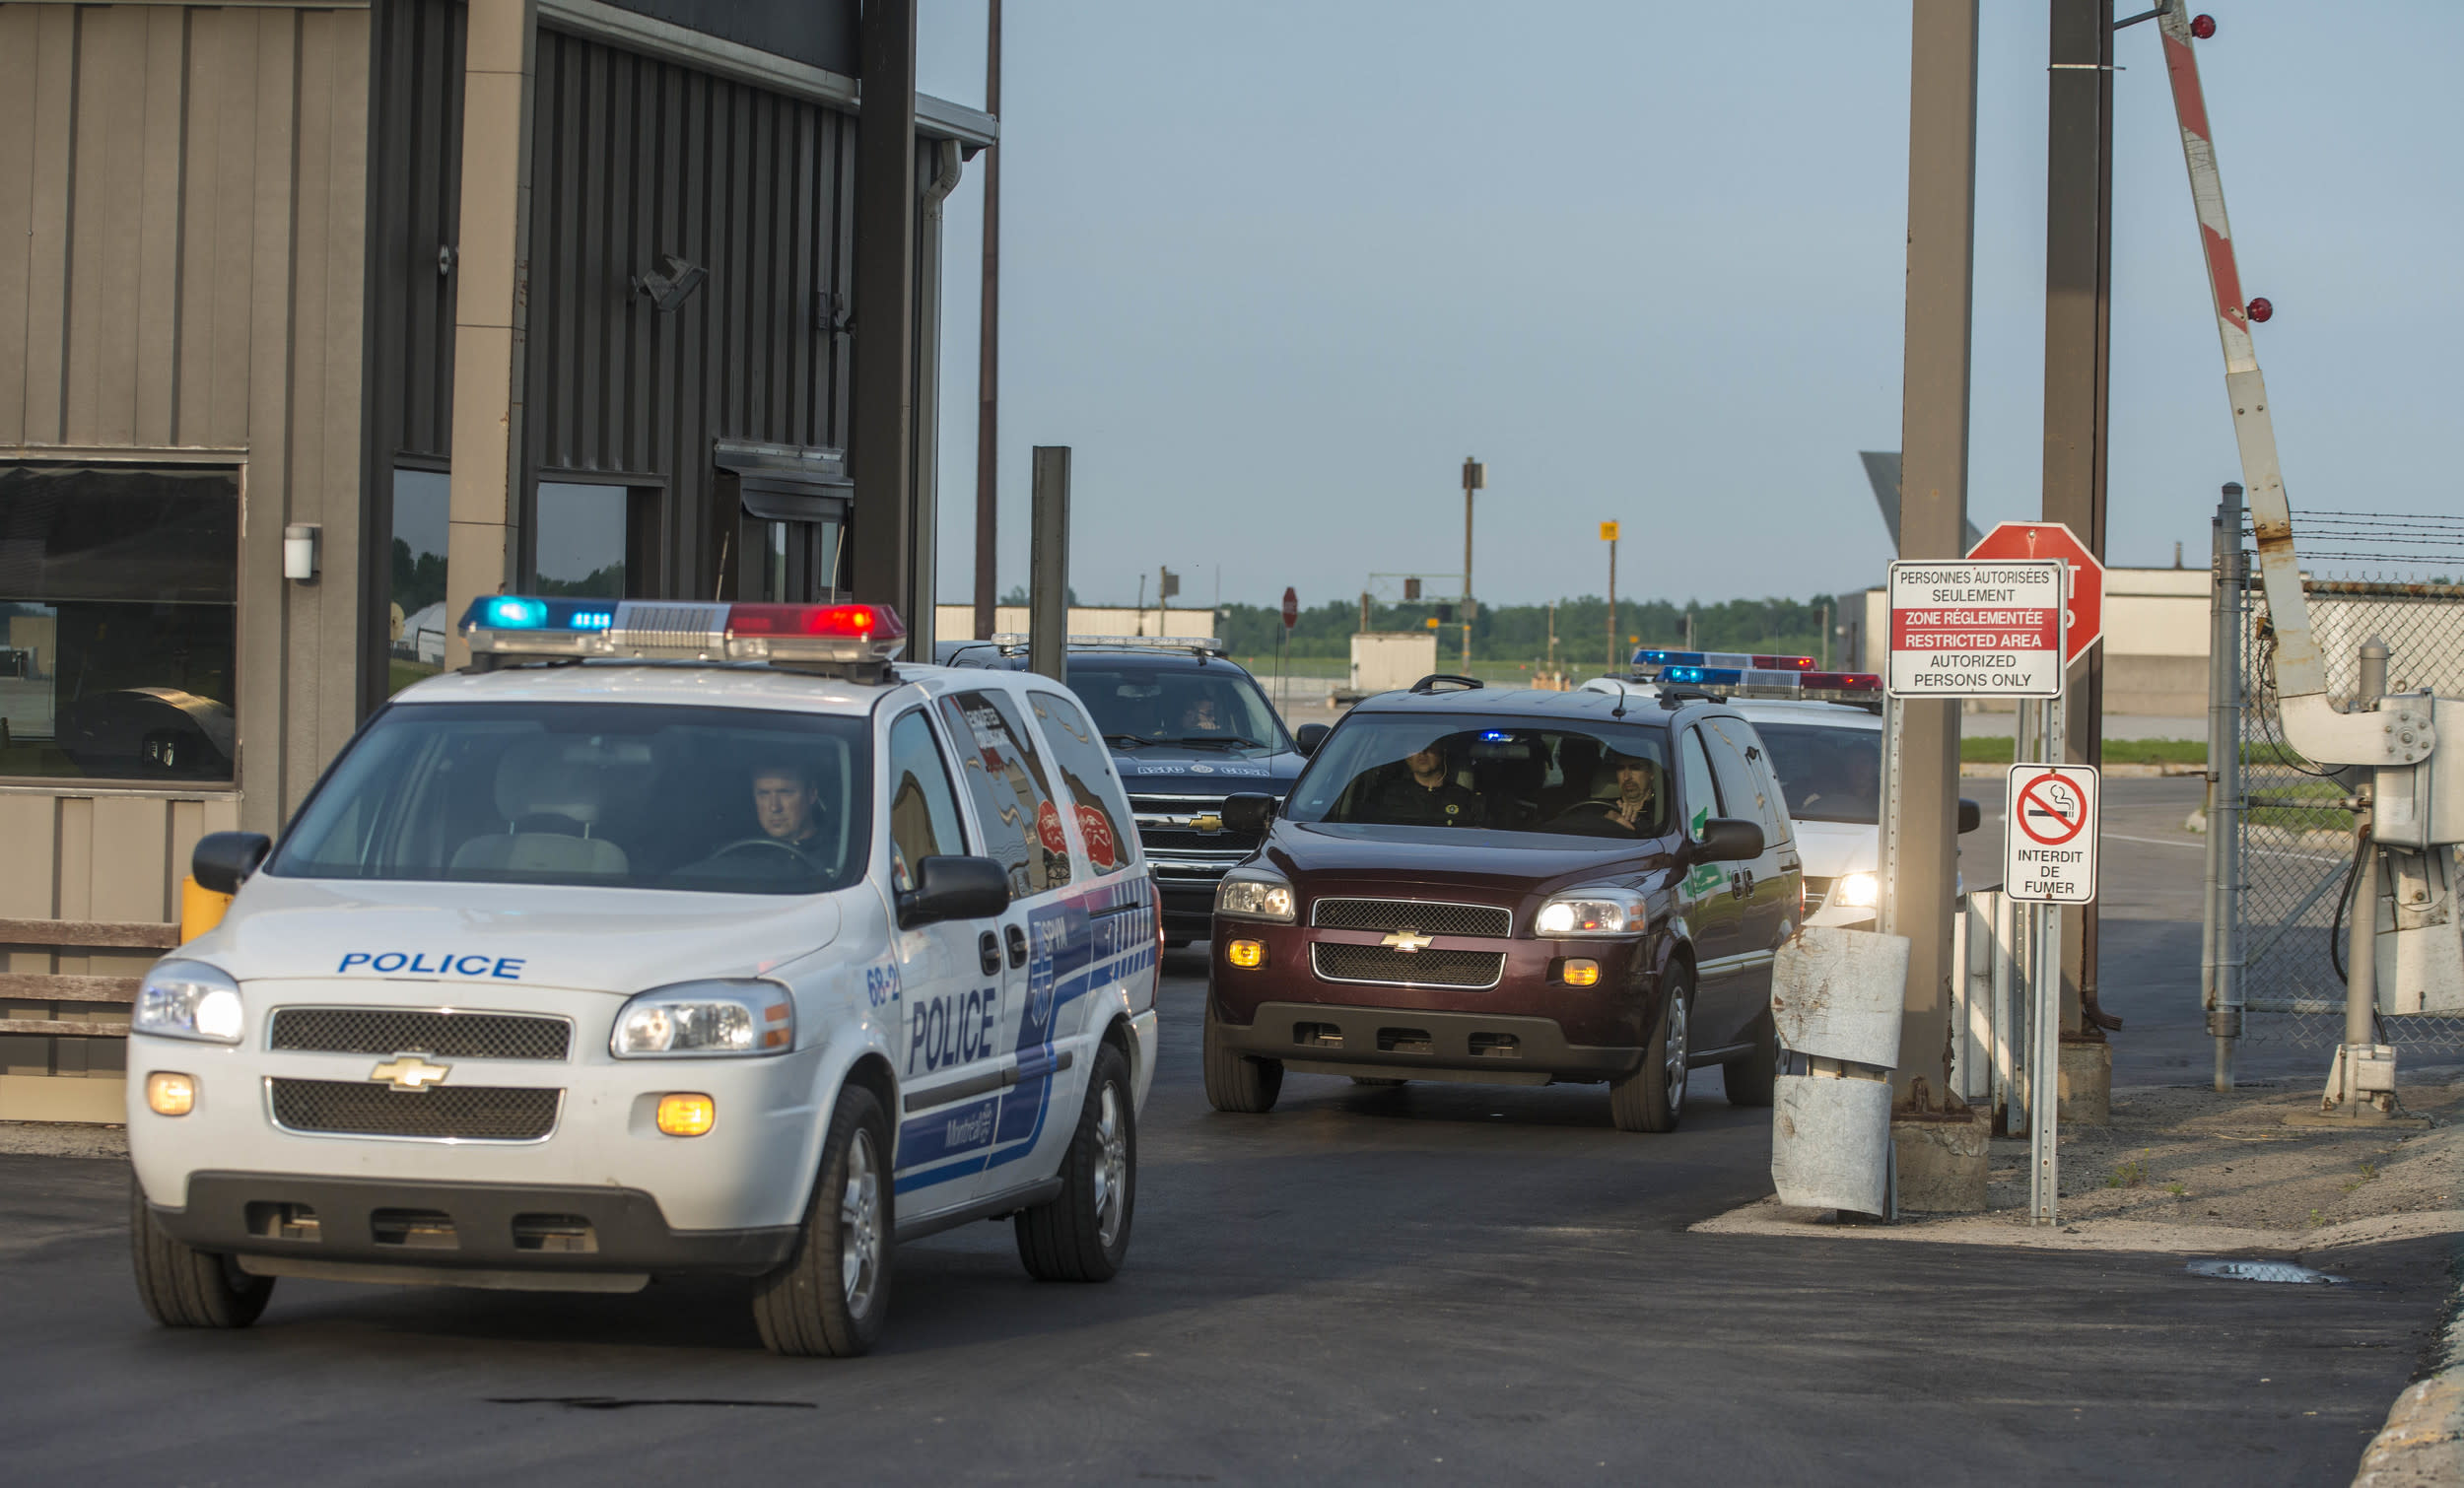 A police convoy carrying  porn actor Luka Rocco Magnotta, dubbed 'the Canadian Psycho',  departs  Mirabel Airport outside Montreal on June 18, 2012 in Mirabel, Quebec, Canada.   Magnotta, who arrived on board a Canadian military plane, is accused of slaying and dismembering a Chinese student in Montreal last month, before fleeing to Europe.   AFP PHOTO / ROGERIO BARBOSA        (Photo credit should read ROGERIO BARBOSA/AFP/GettyImages)